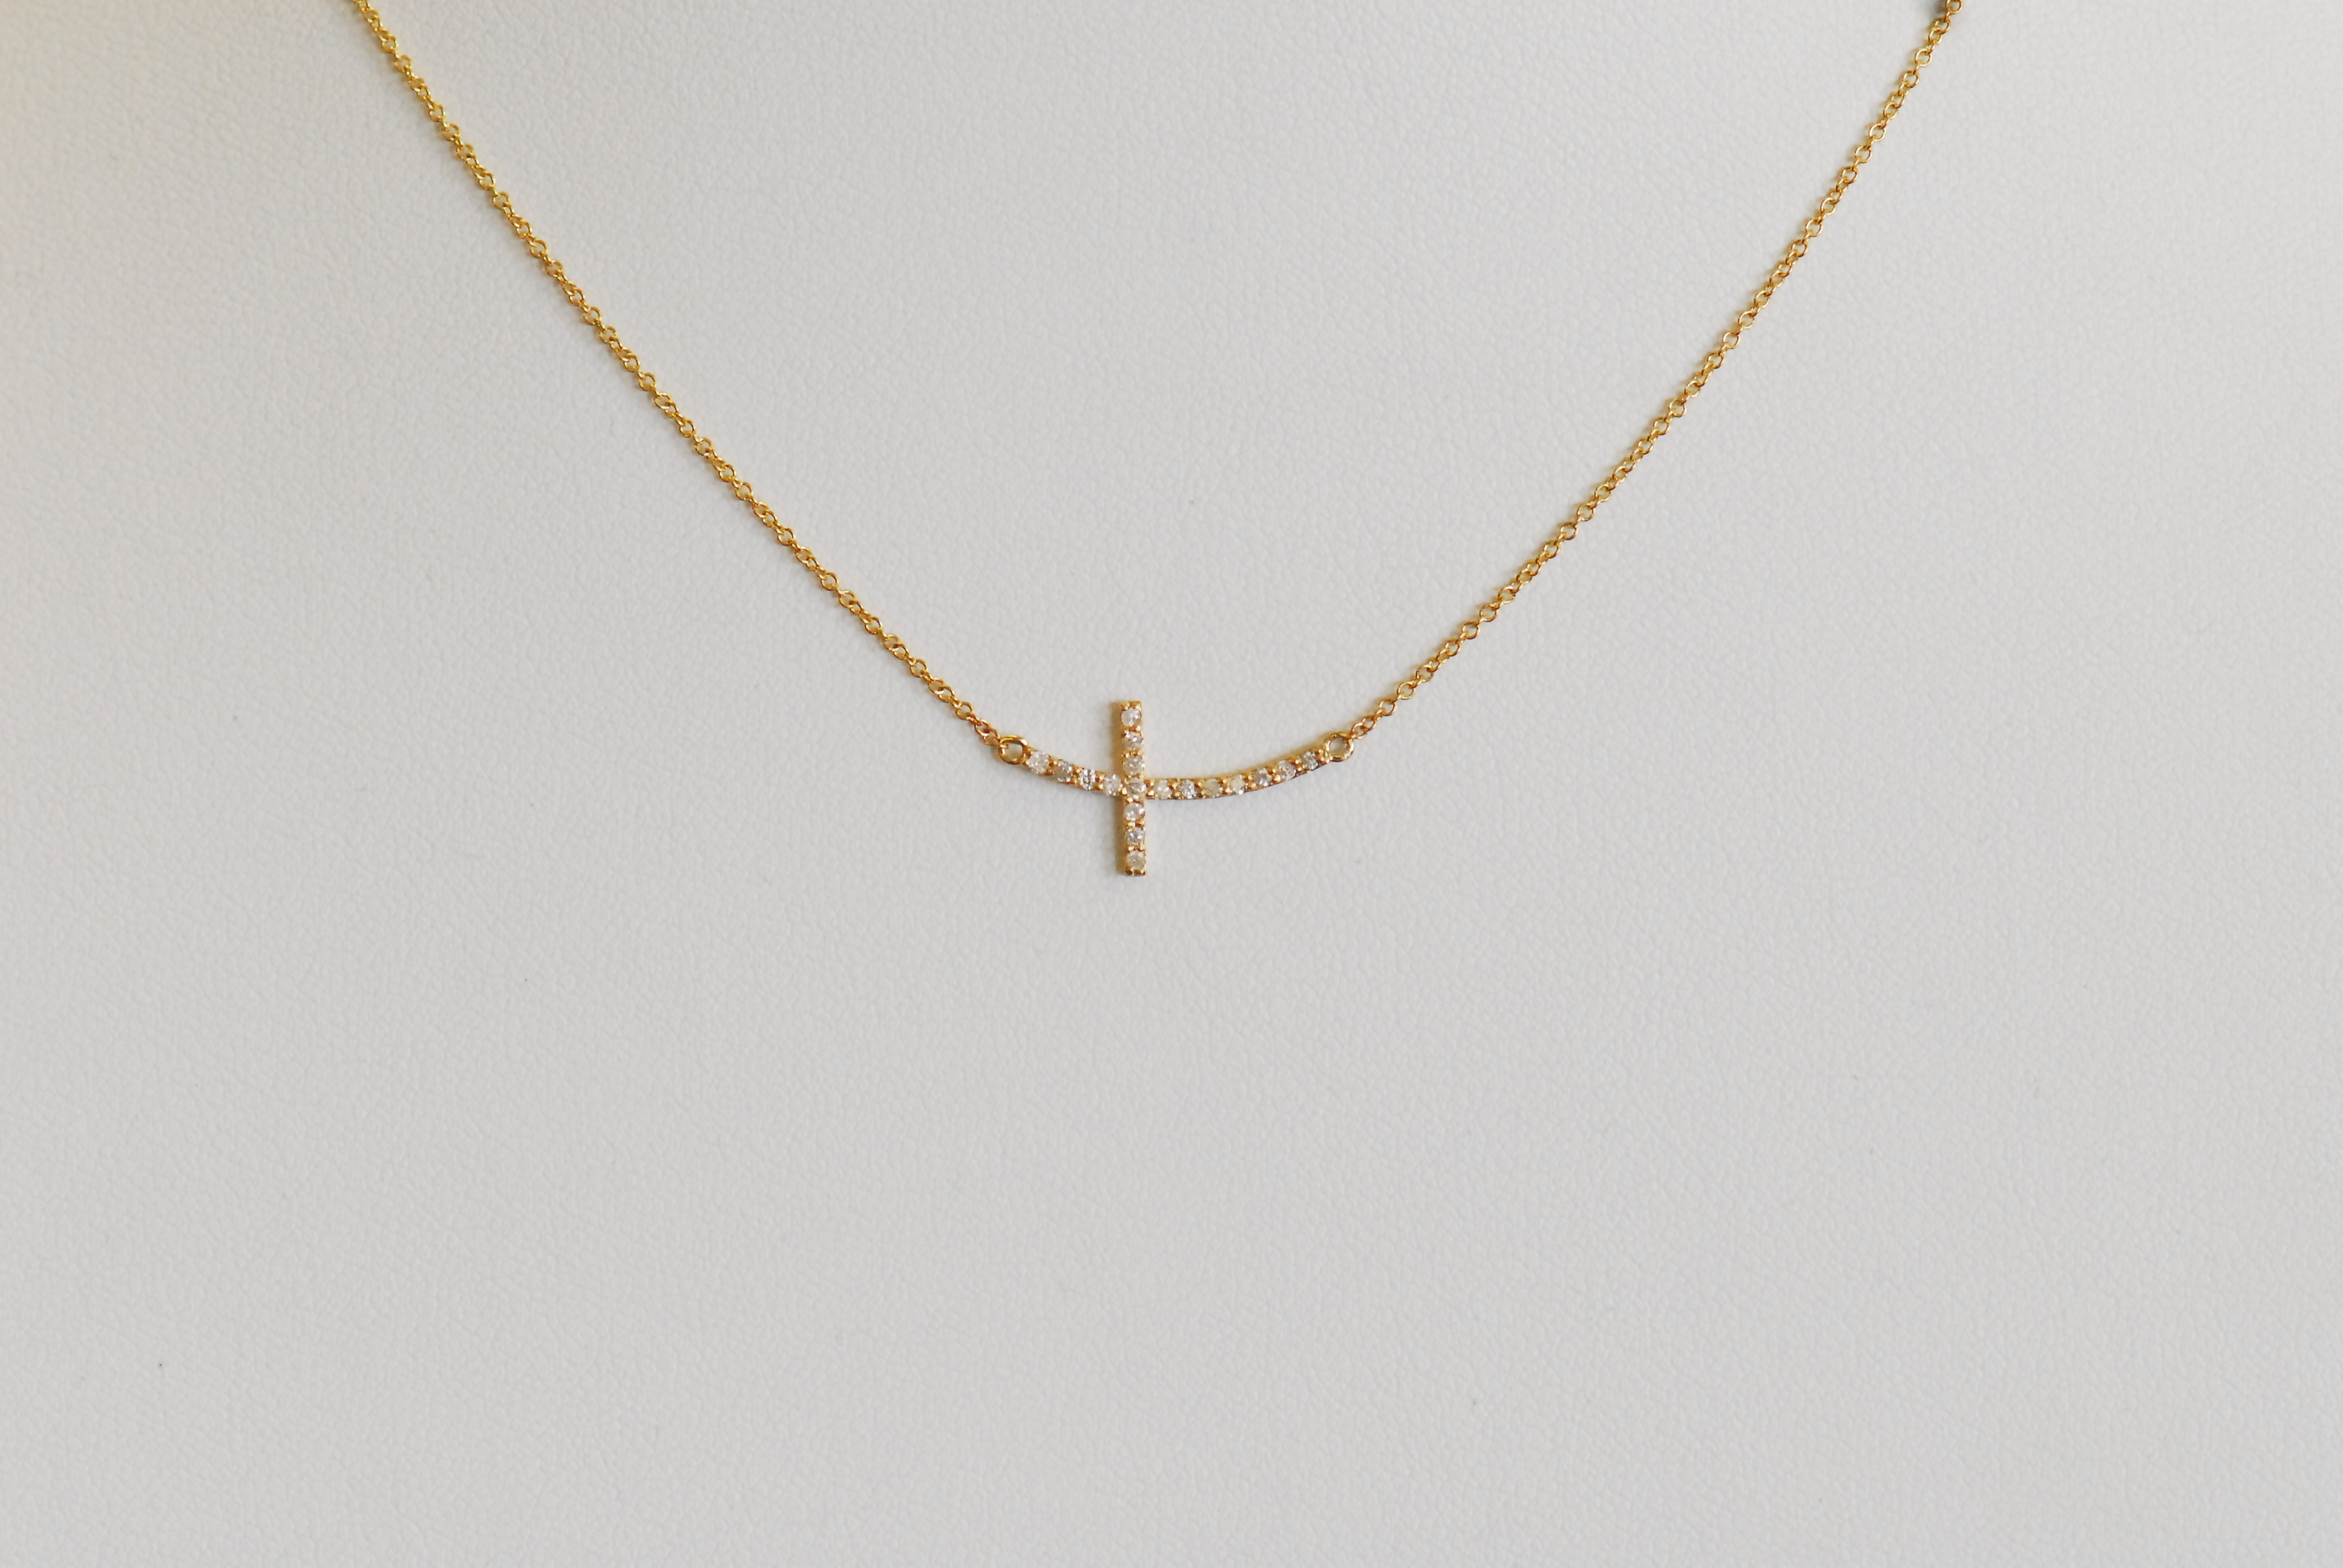 Cross Necklace Special Order 14K Yellow Gold 0.15 cts. 6J8319